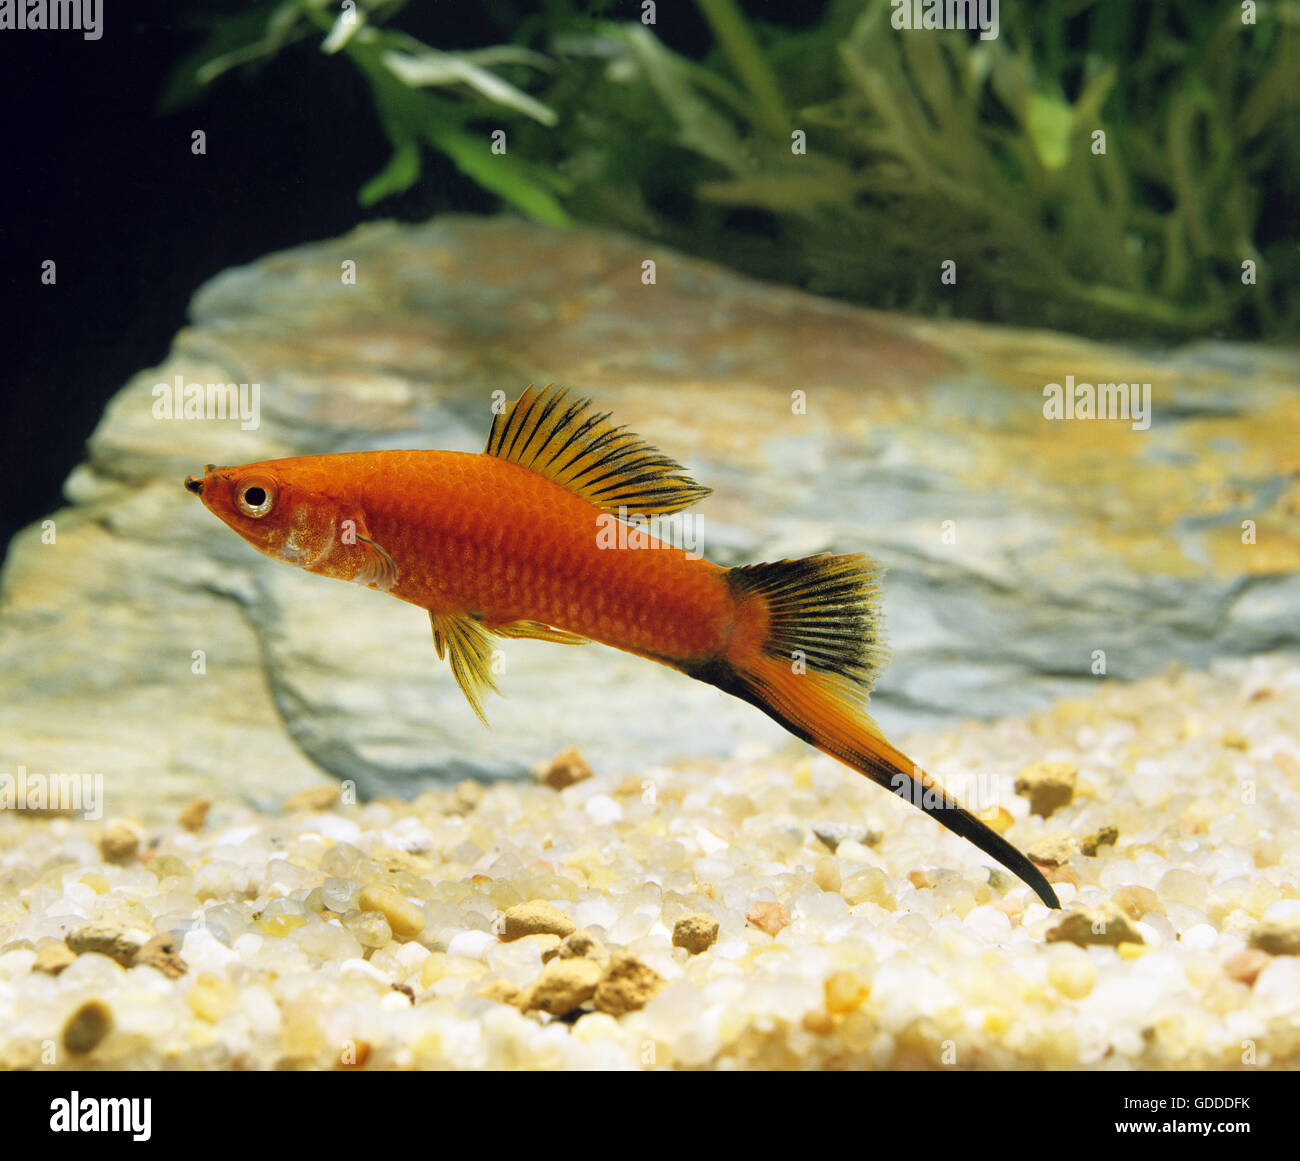 Red Wagtail Swordtail Fish, xiphophorus helleri wagtail ...